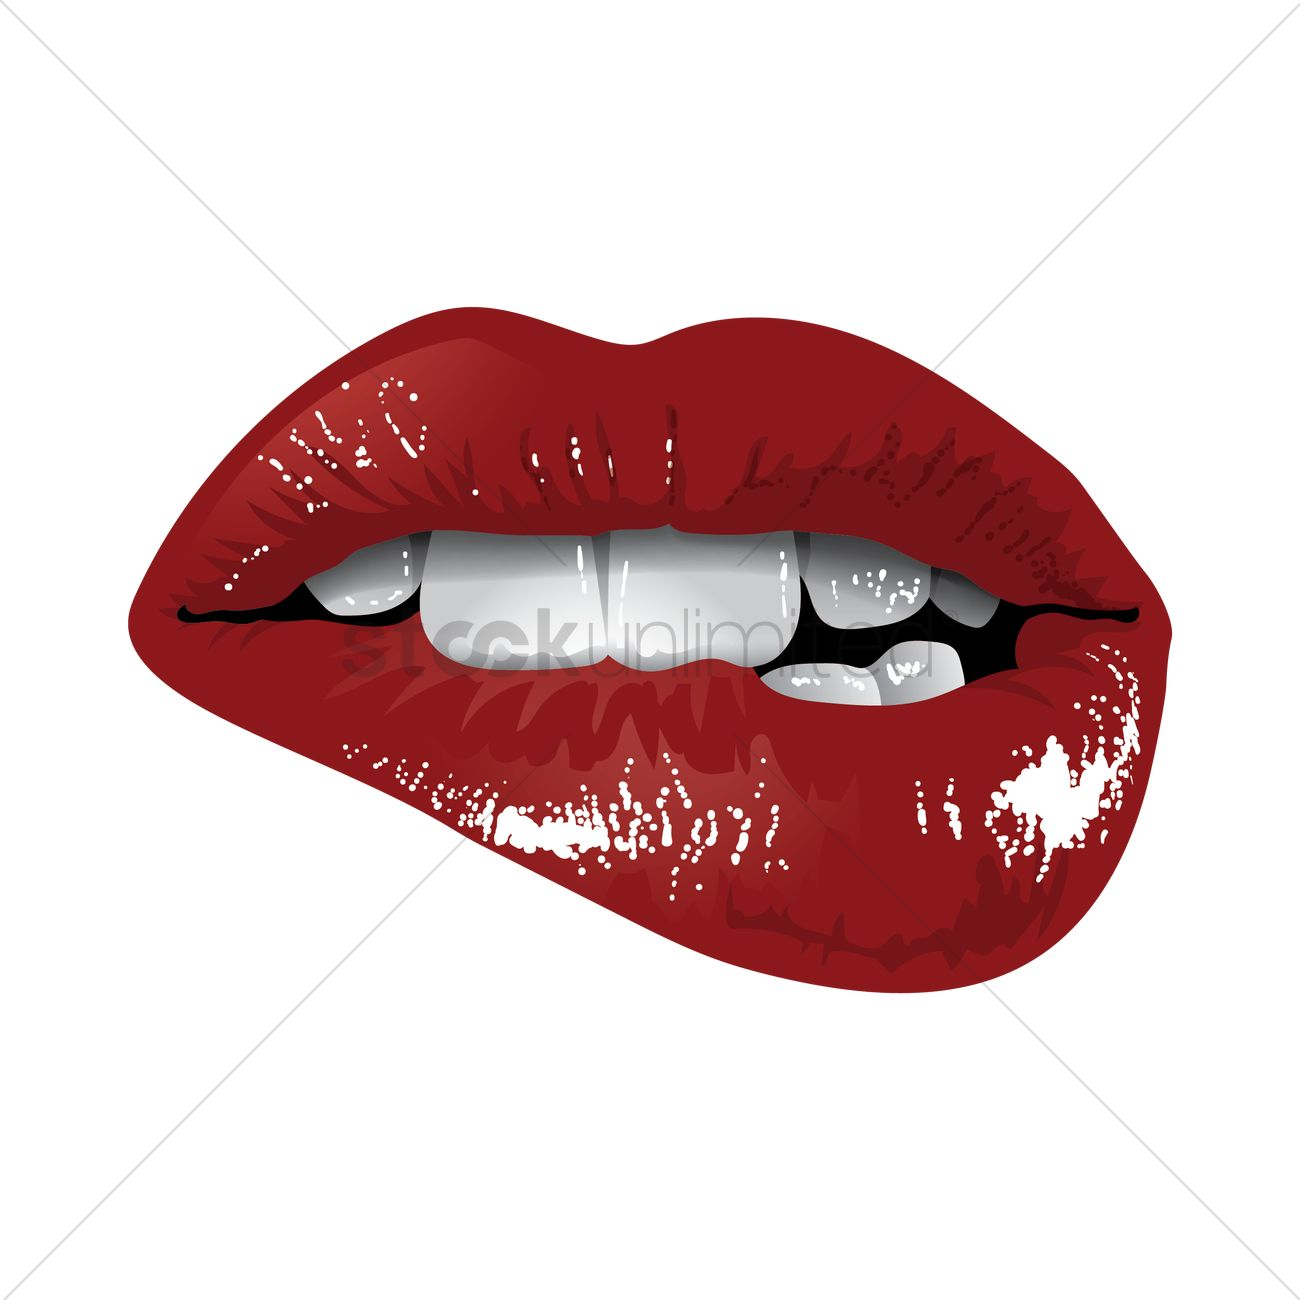 Woman Biting Lips Vector Image 1498716 Stockunlimited